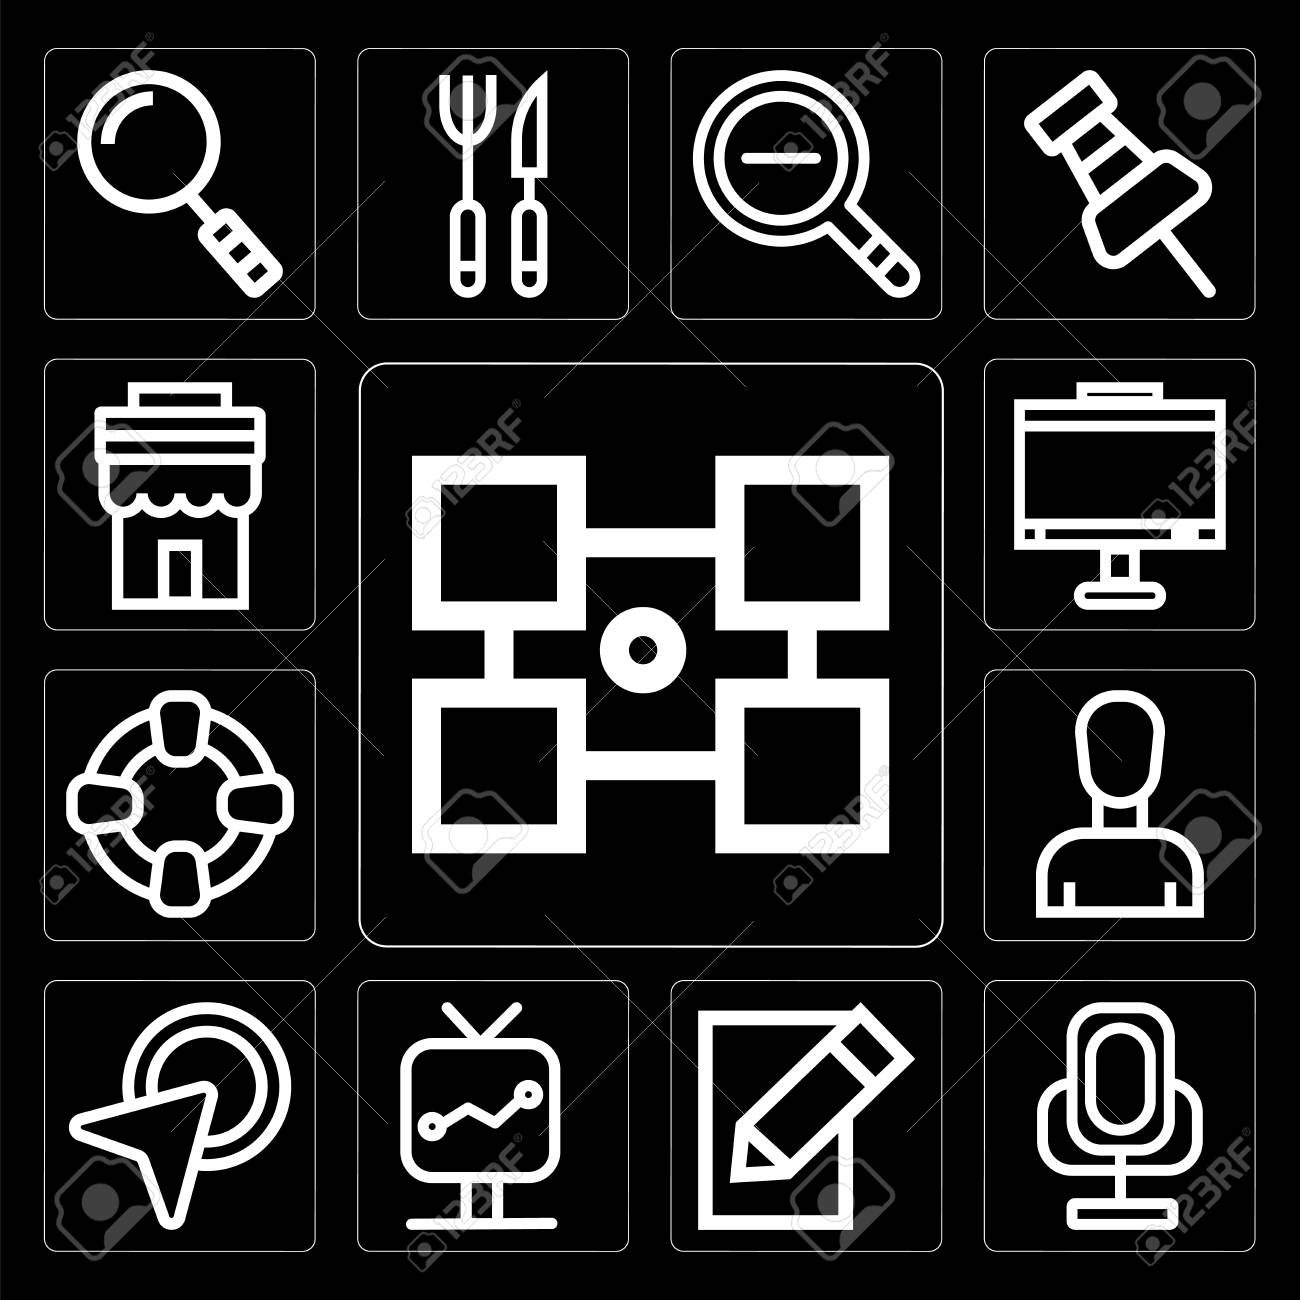 Set Of 13 simple editable icons such as Layout, Voice recorder, Edit,  Screen, Cursor, Profile, Help, Monitor, Store on black background